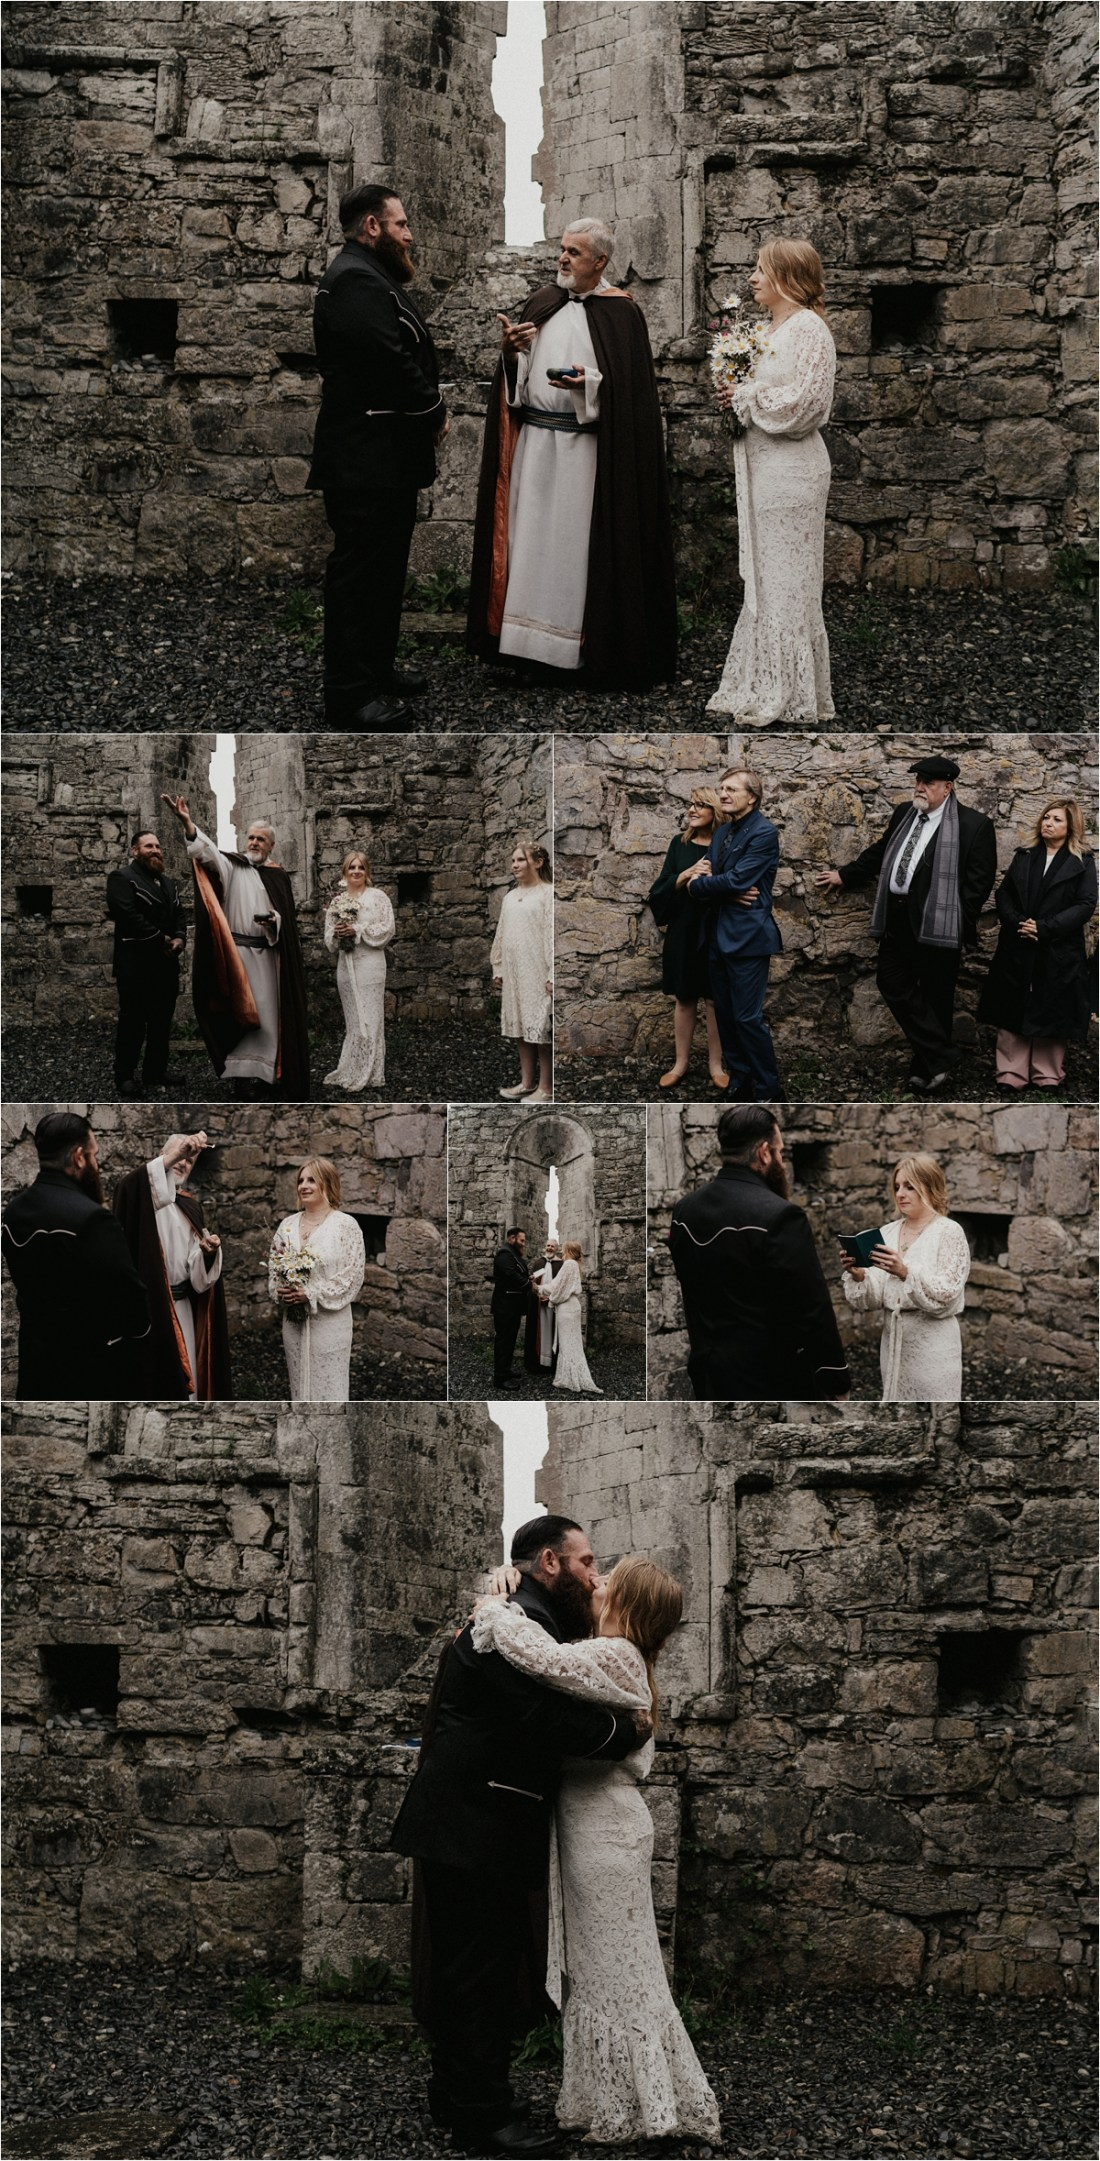 An elopement ceremony amongst the church ruins on the Aran Islands in Ireland by Emily Black Photography